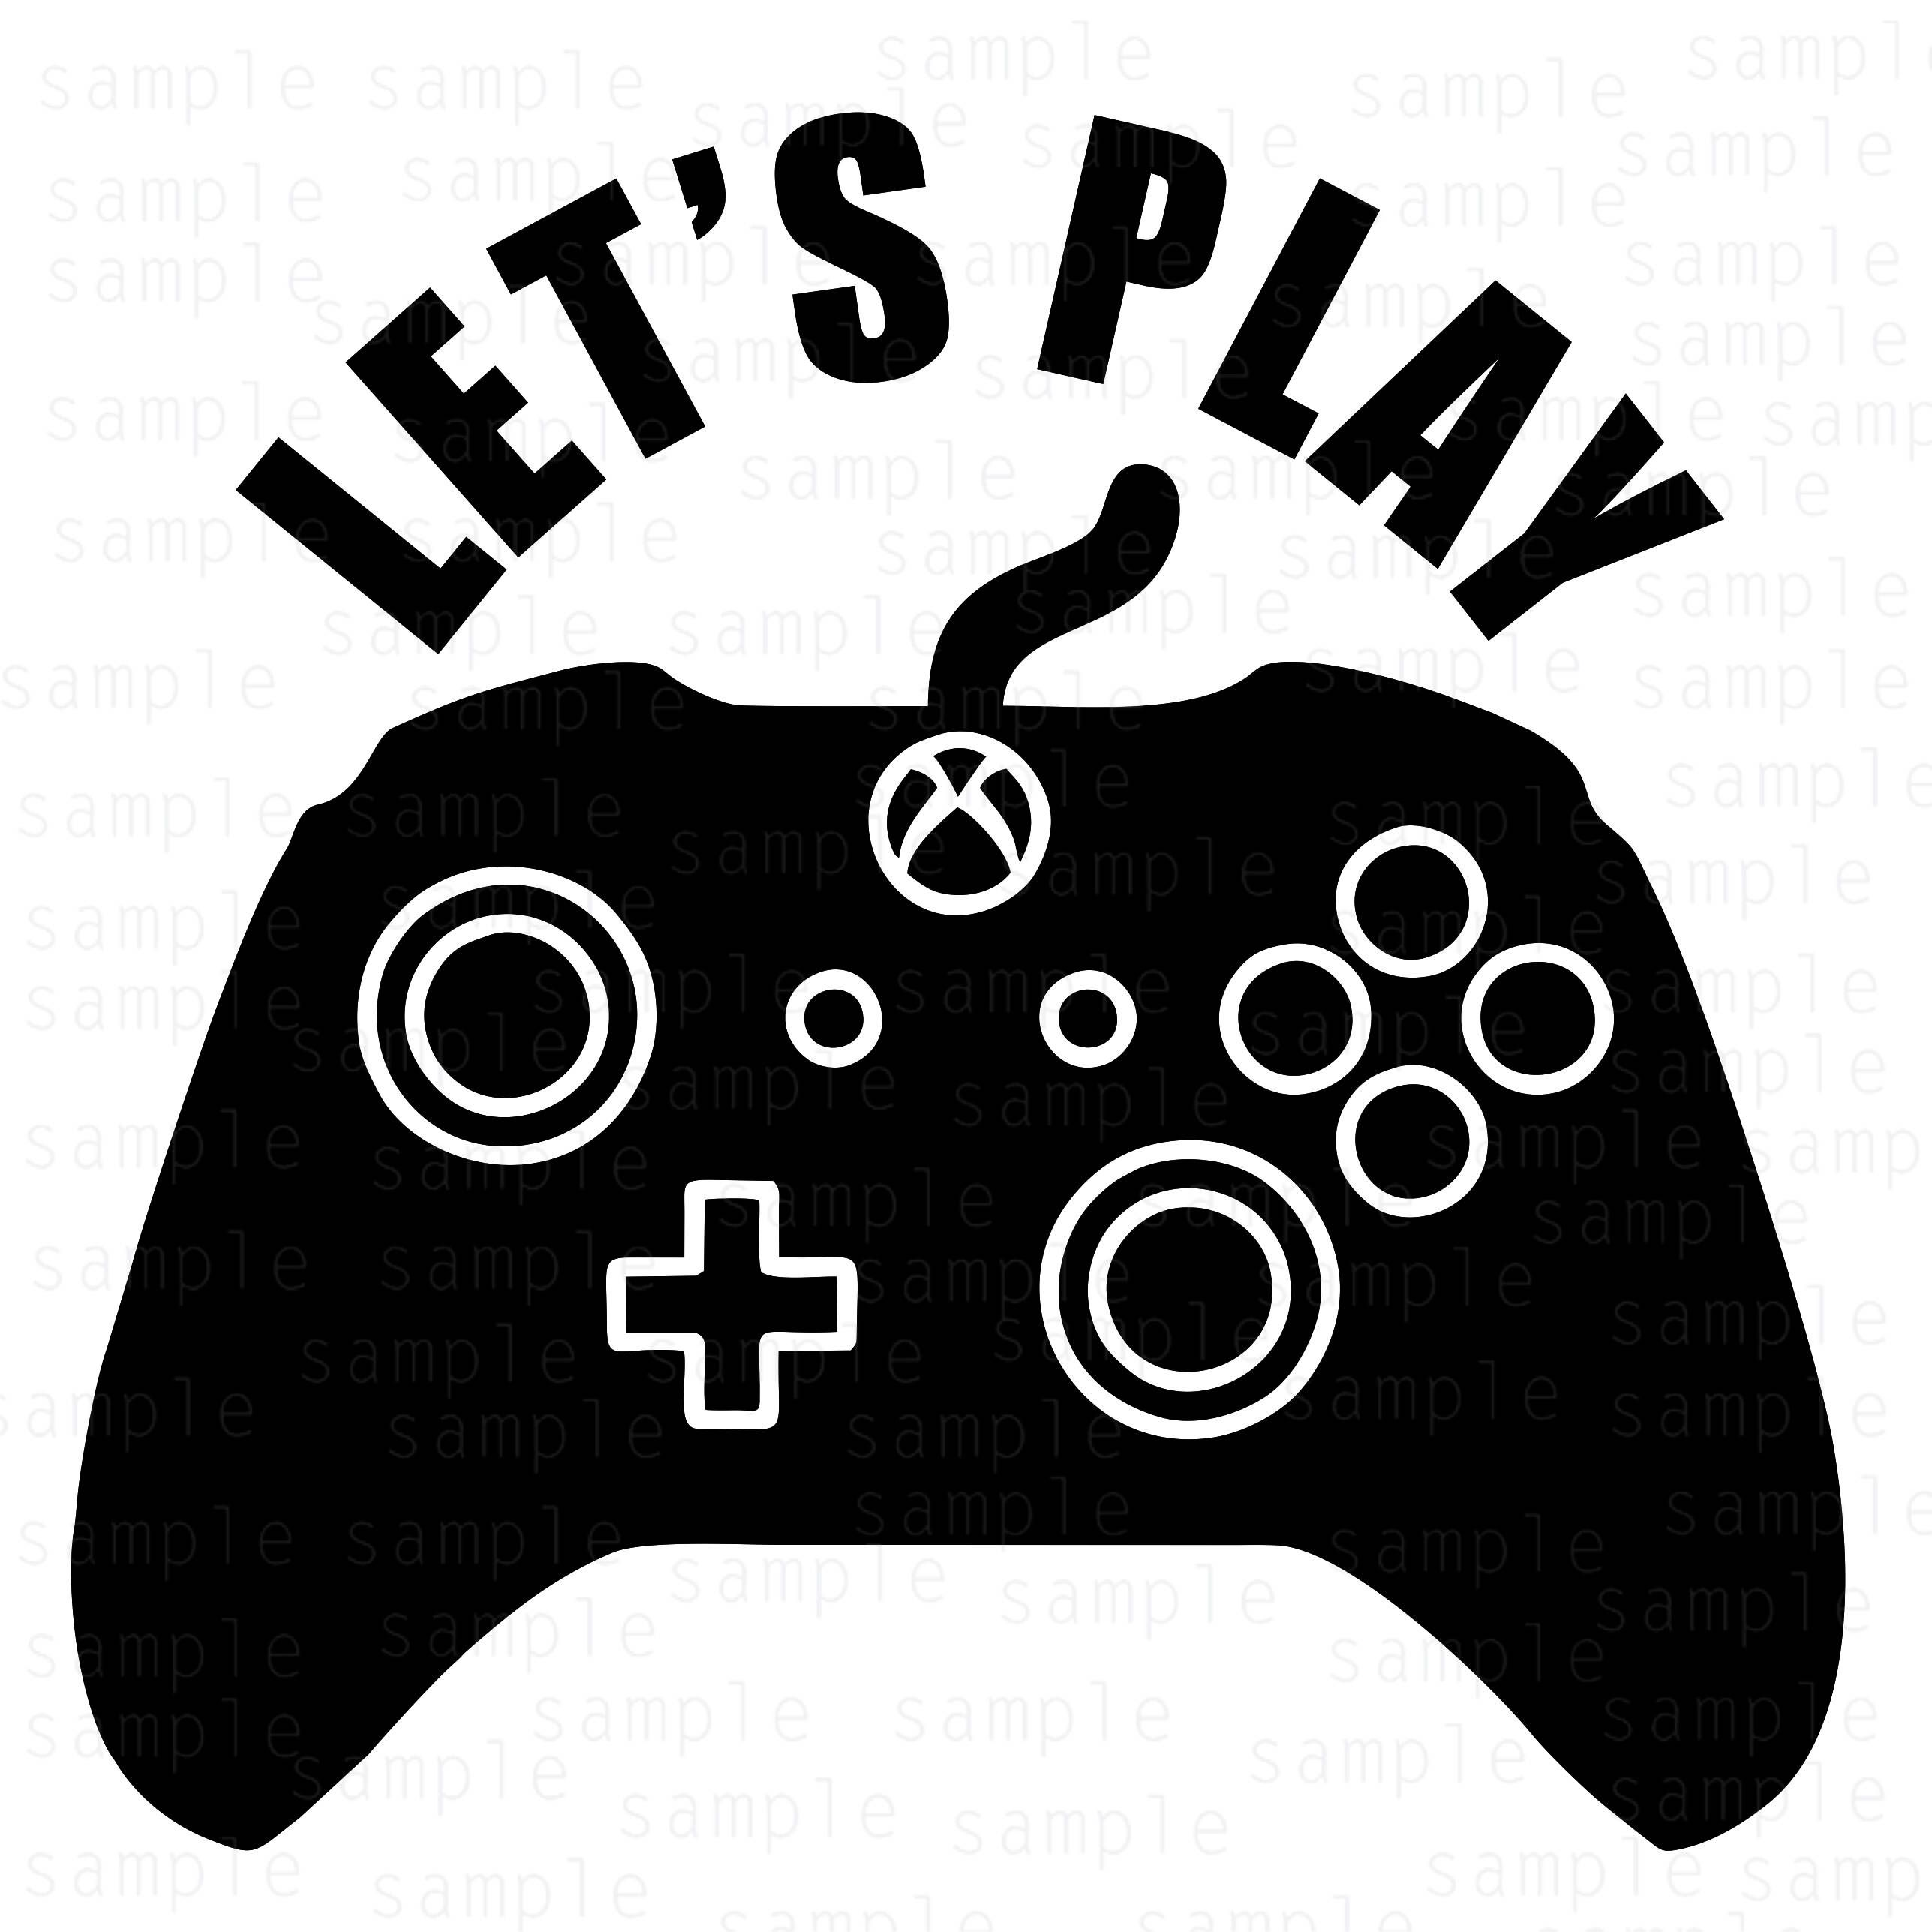 Let's play, Xbox Controller svg, xbox svg, controller svg